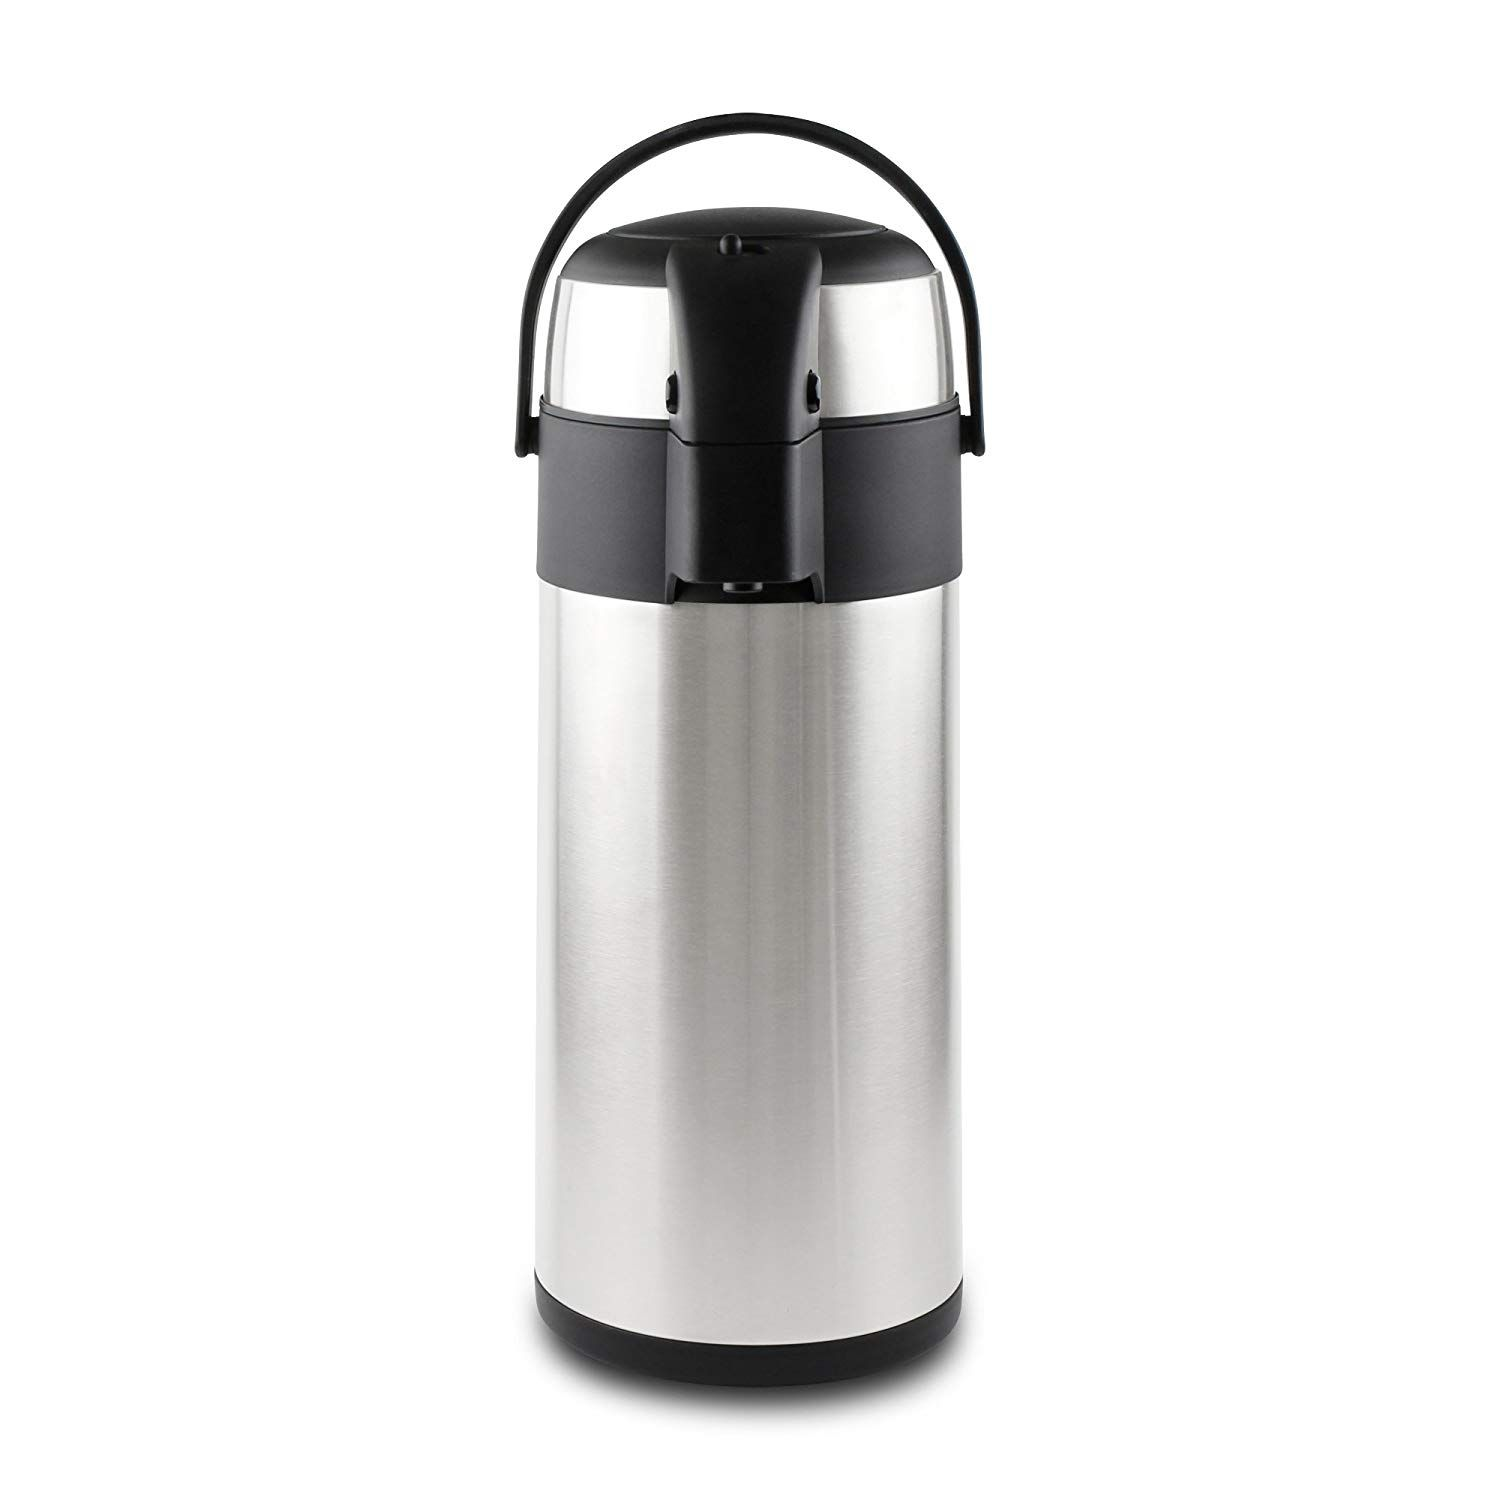 Termo de acero inoxidable con dispensador de té y café, acero inoxidable, Satin Finish, 5 litros